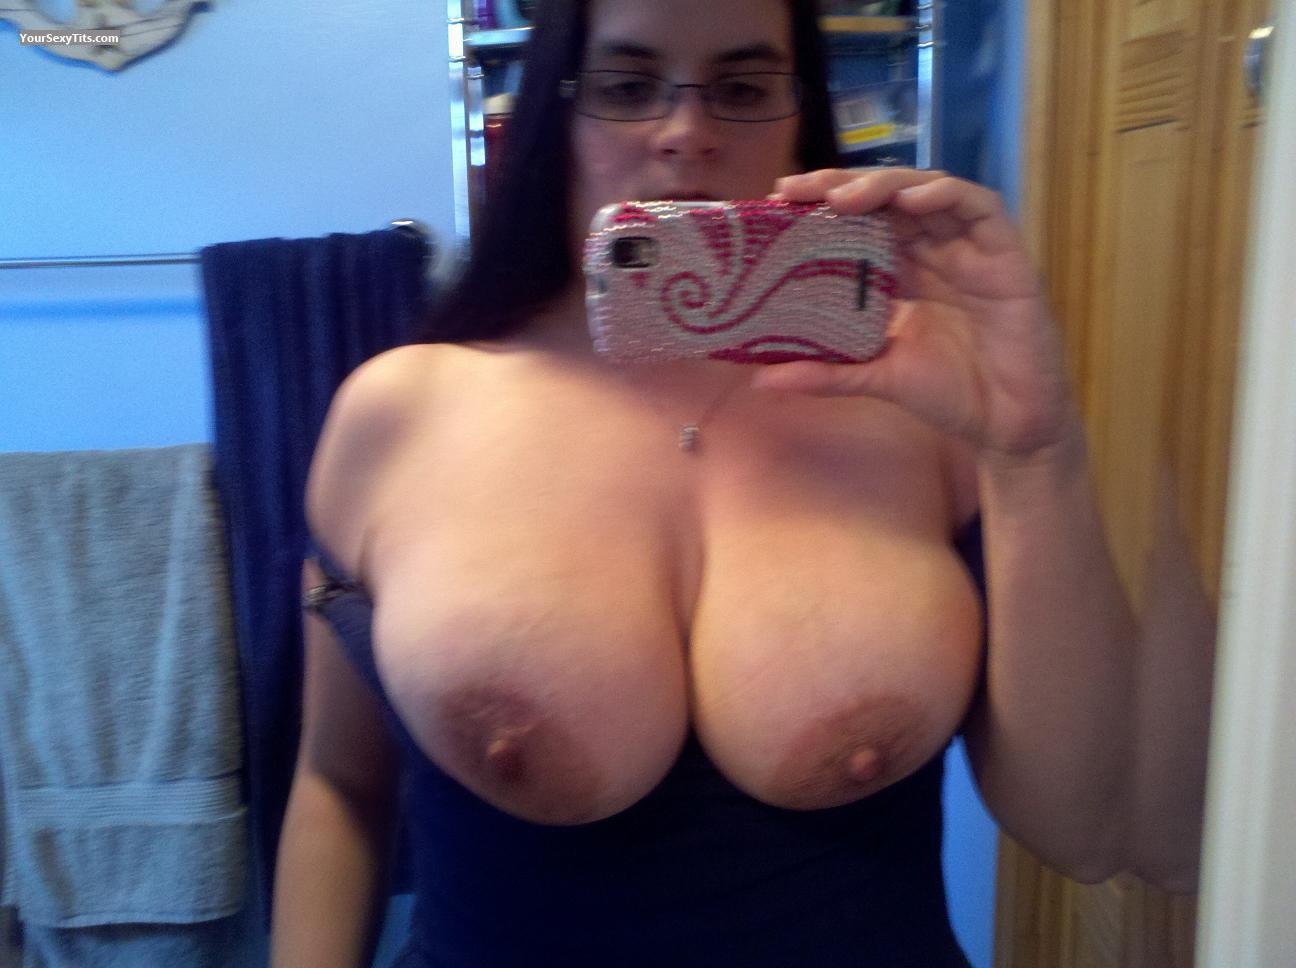 Very big Tits Of My Ex-Girlfriend Topless Selfie by Toni